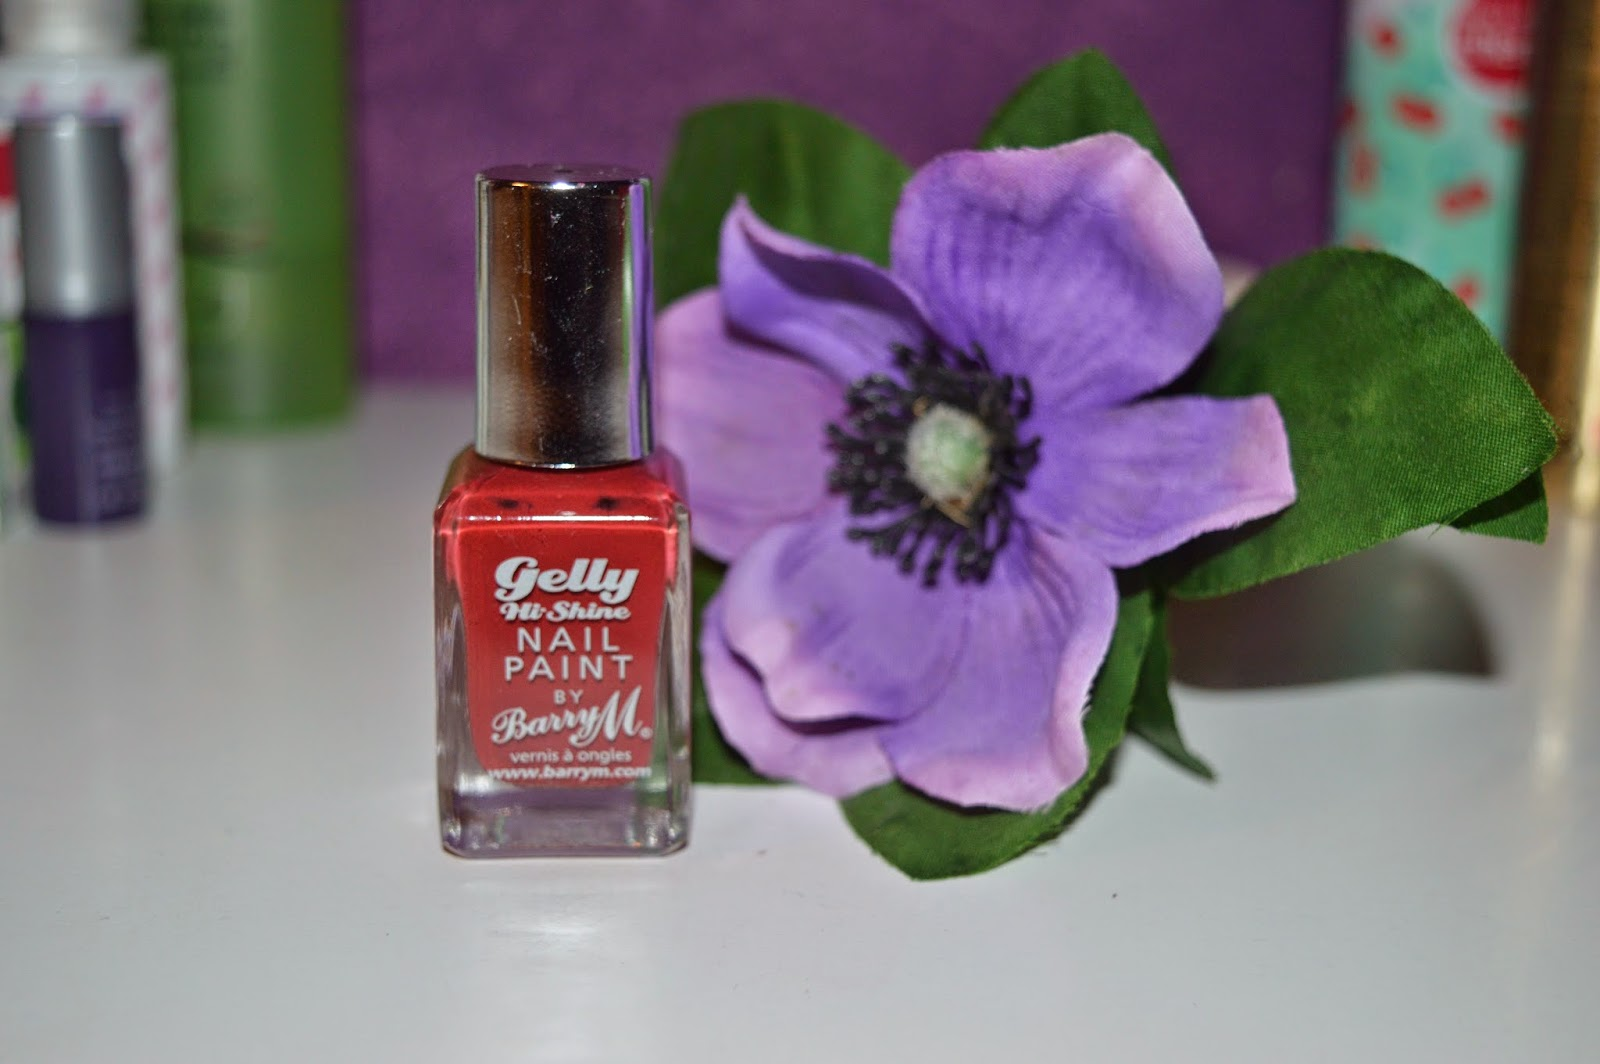 Barry M Chilli cruelty free